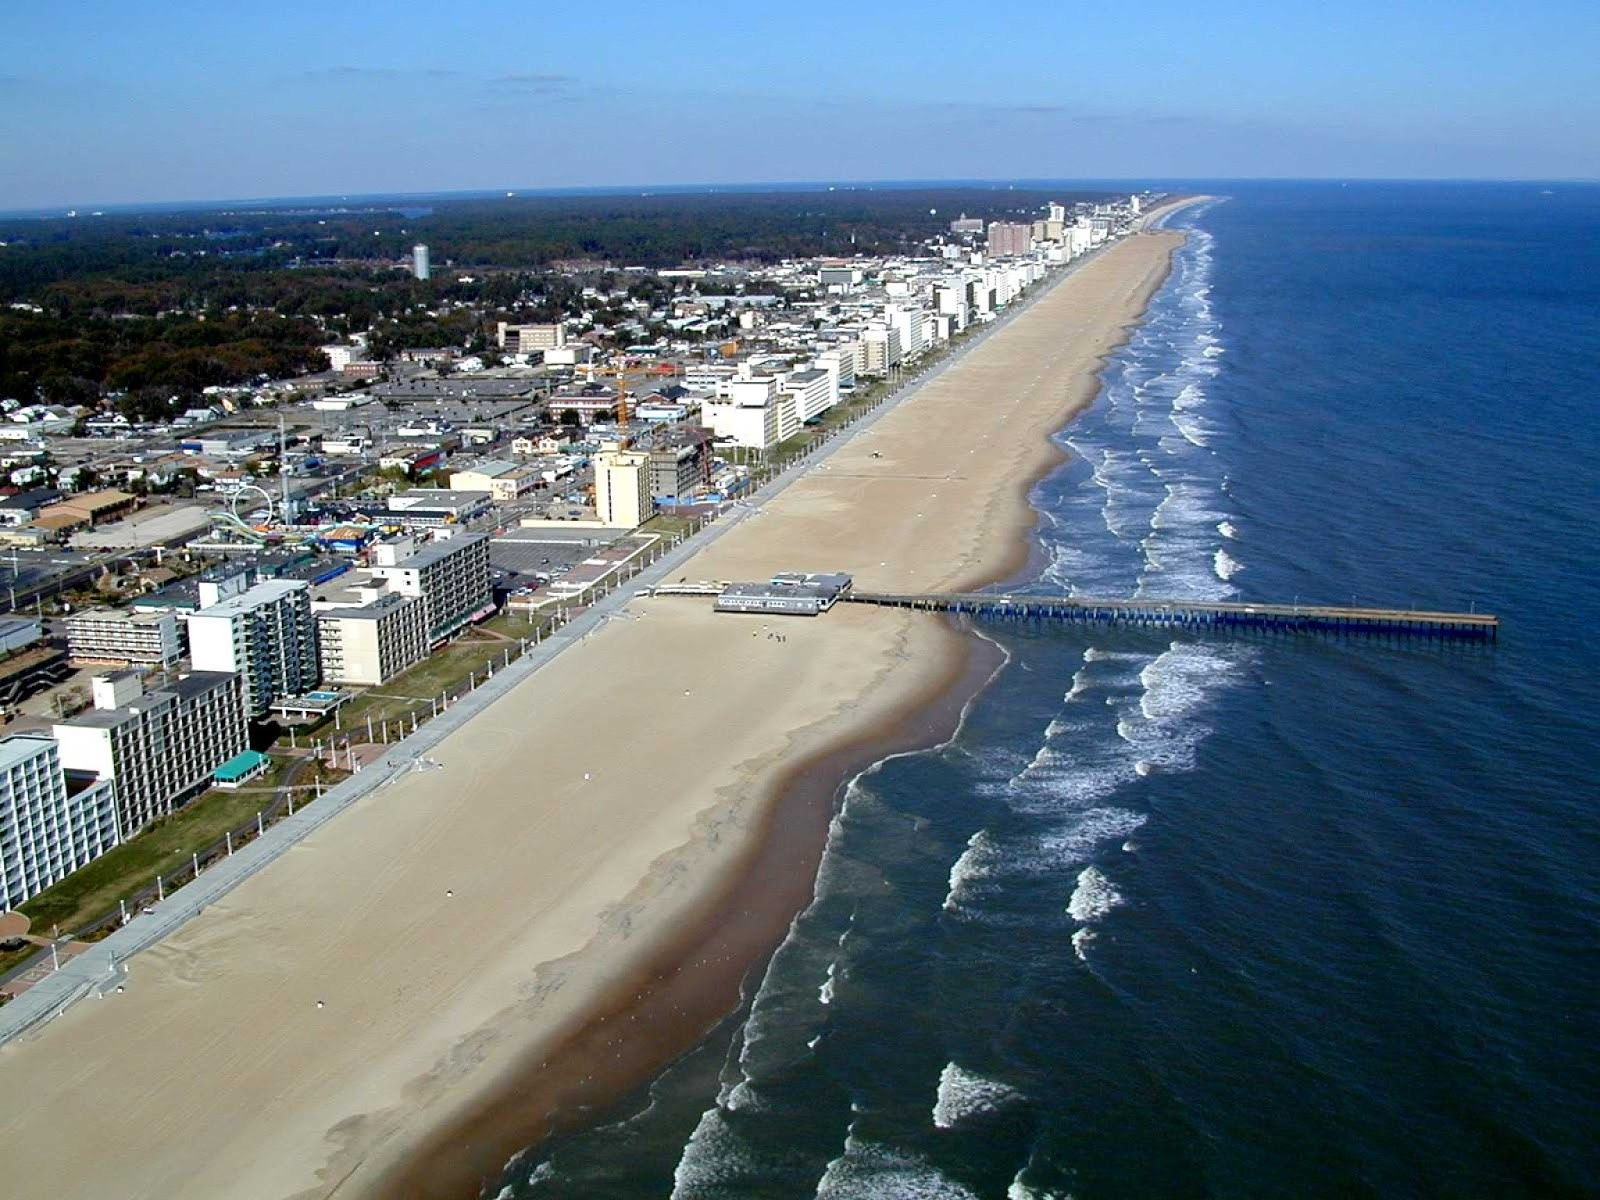 Virginia Beach | Estado da Virginia | Estados Unidos da América